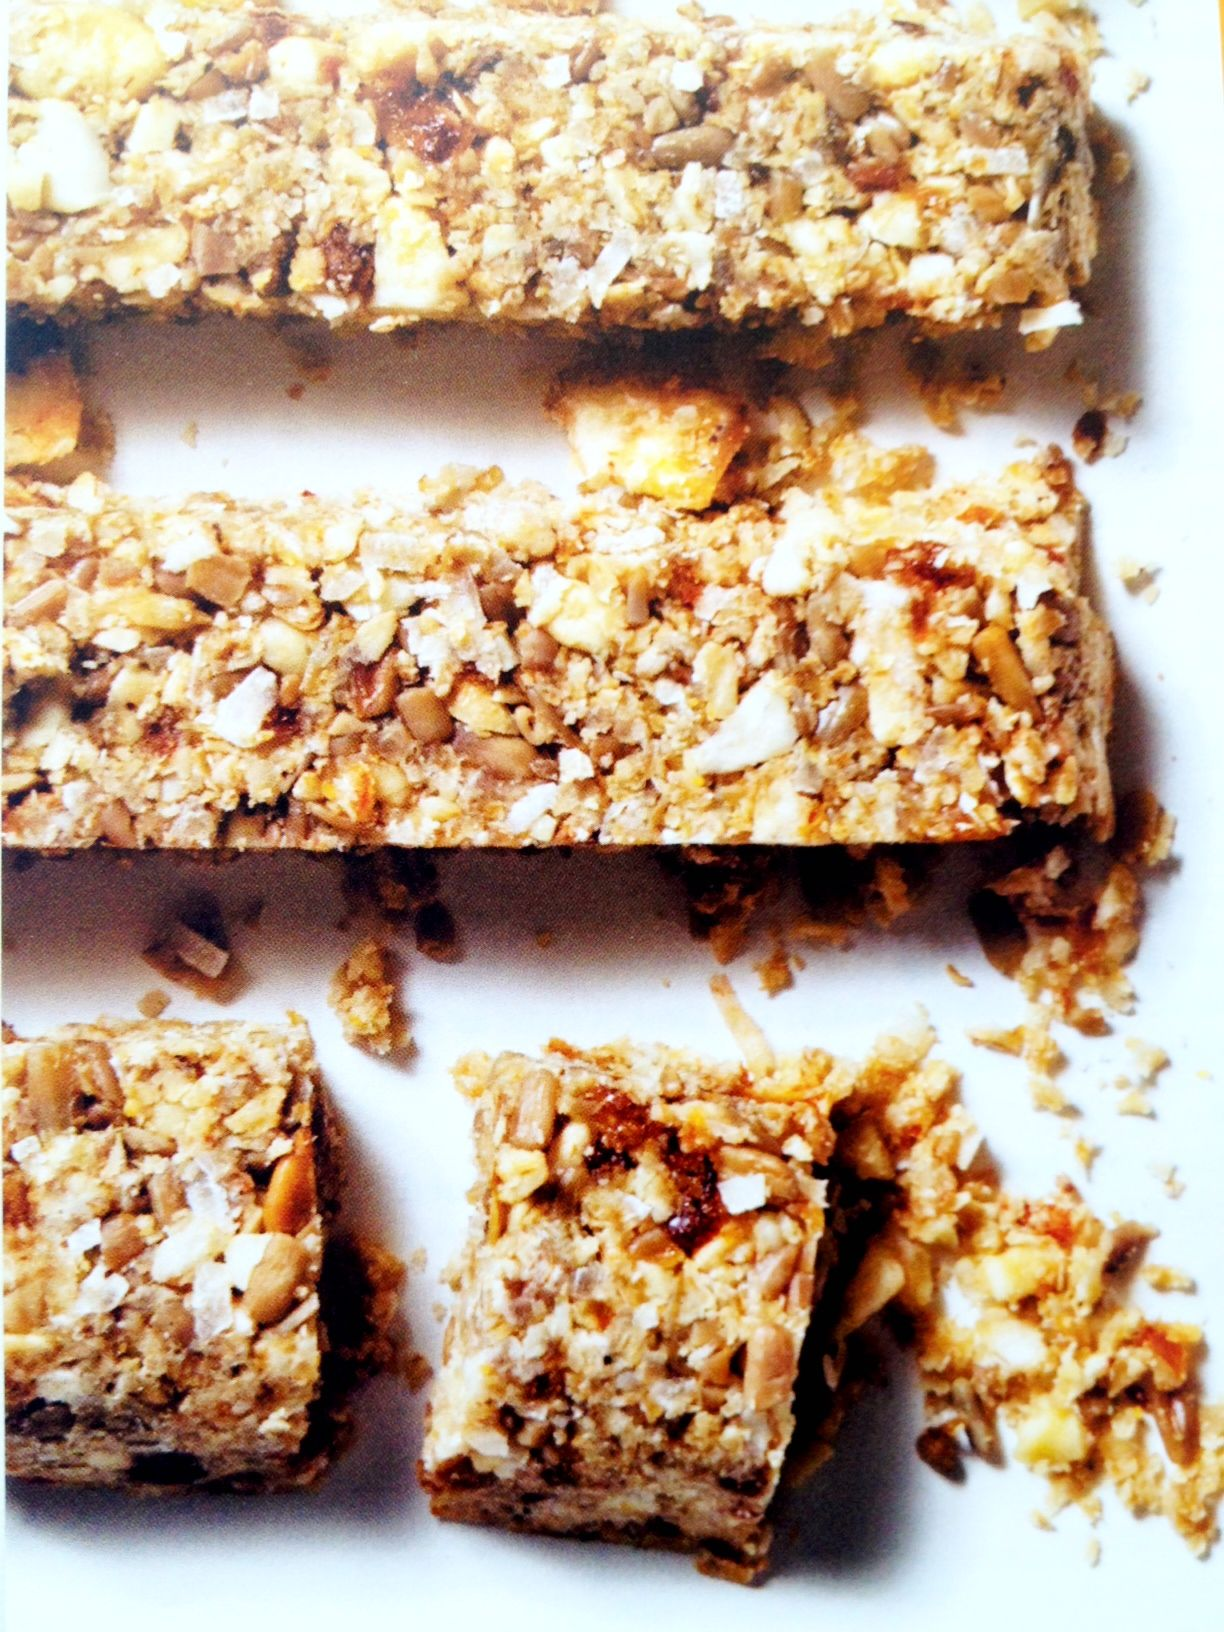 Banana Coconut Energy Bars recommend